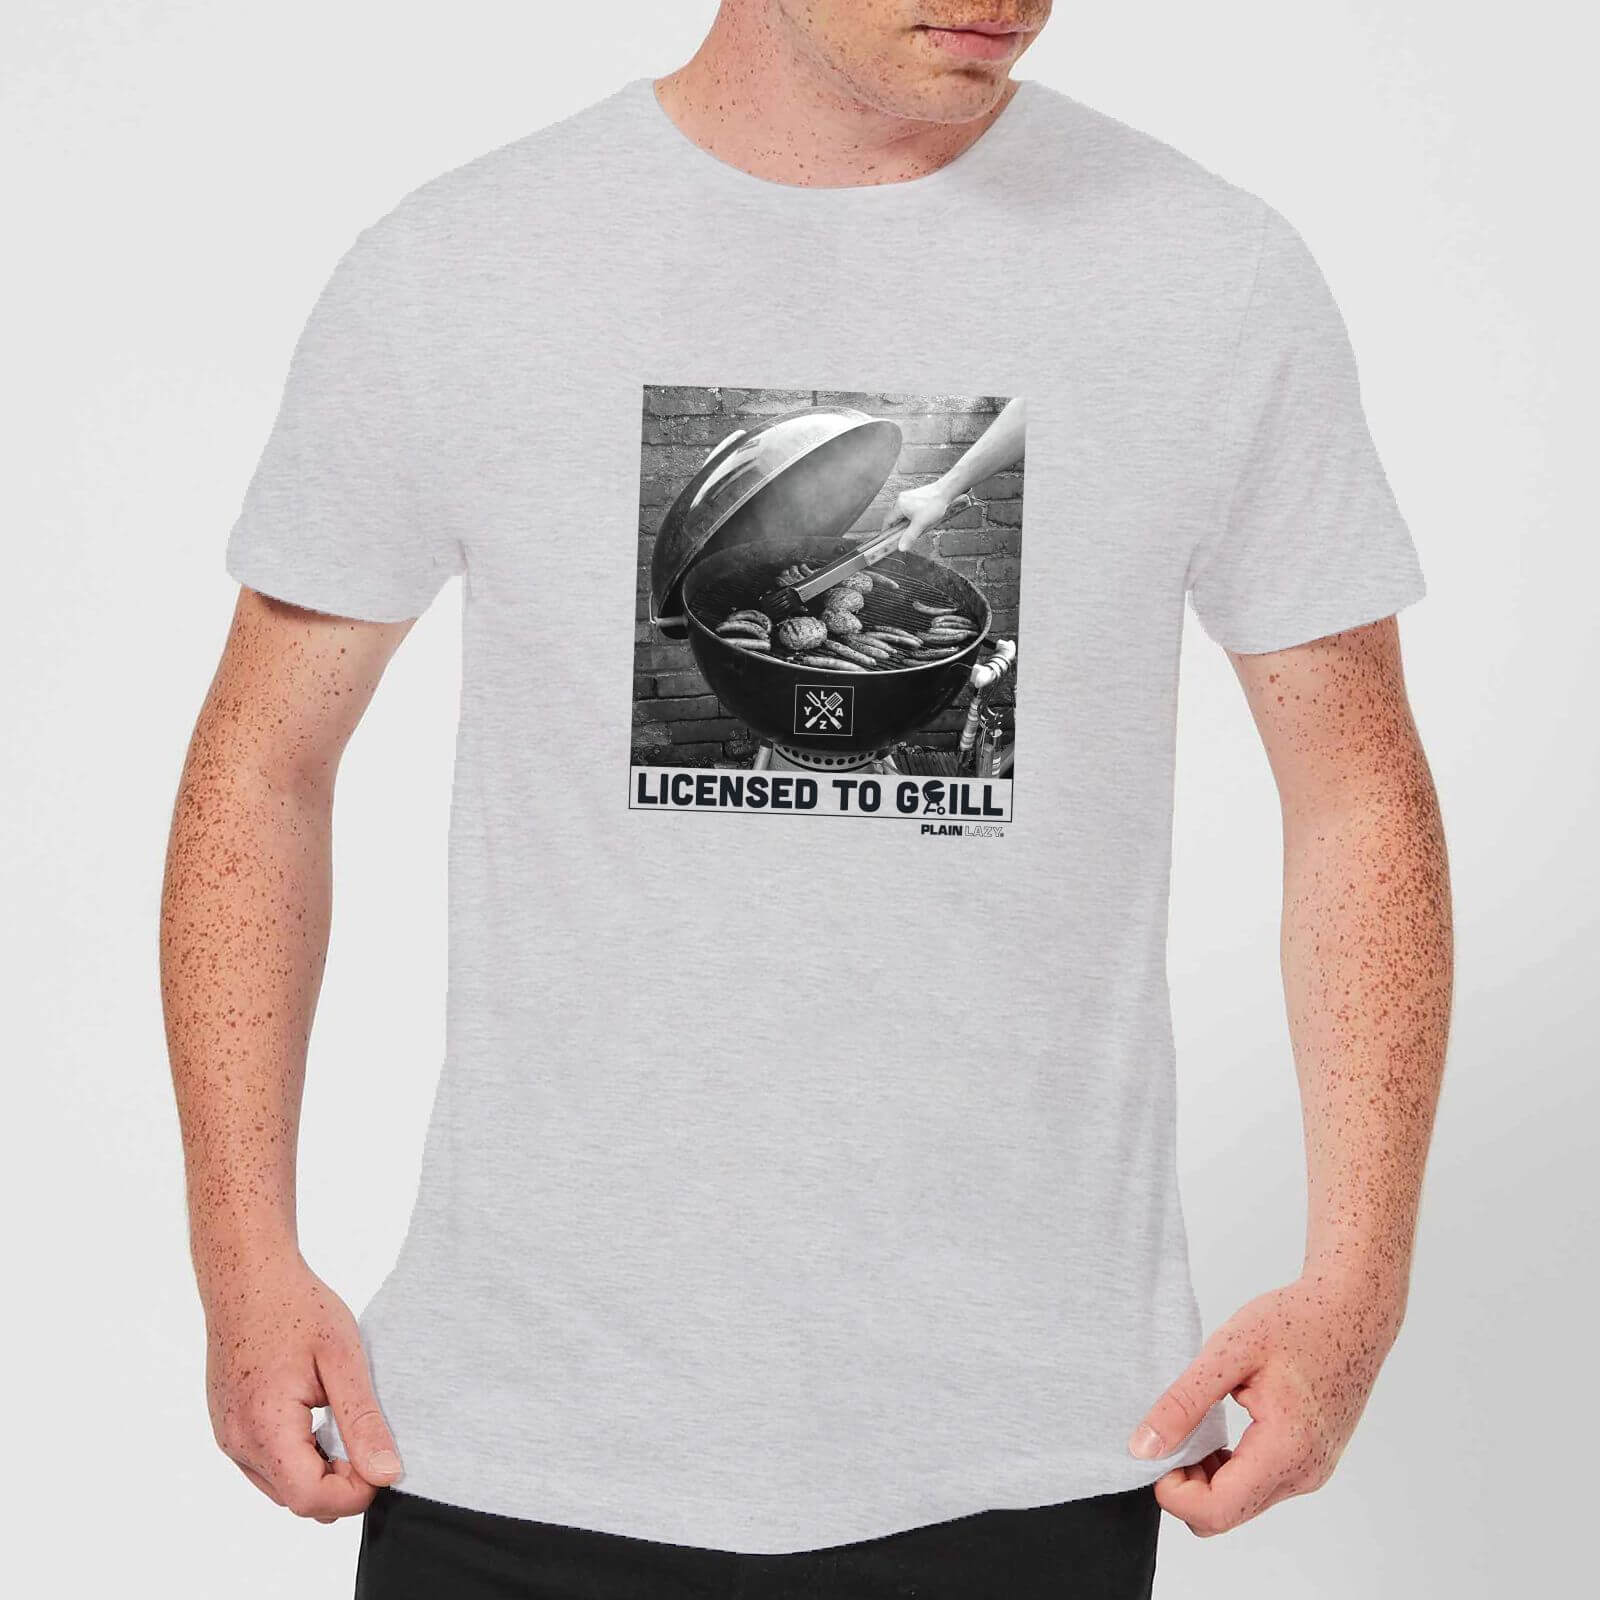 Plain Lazy Licence To Grill Men's T-Shirt - Grey - XS - Grey